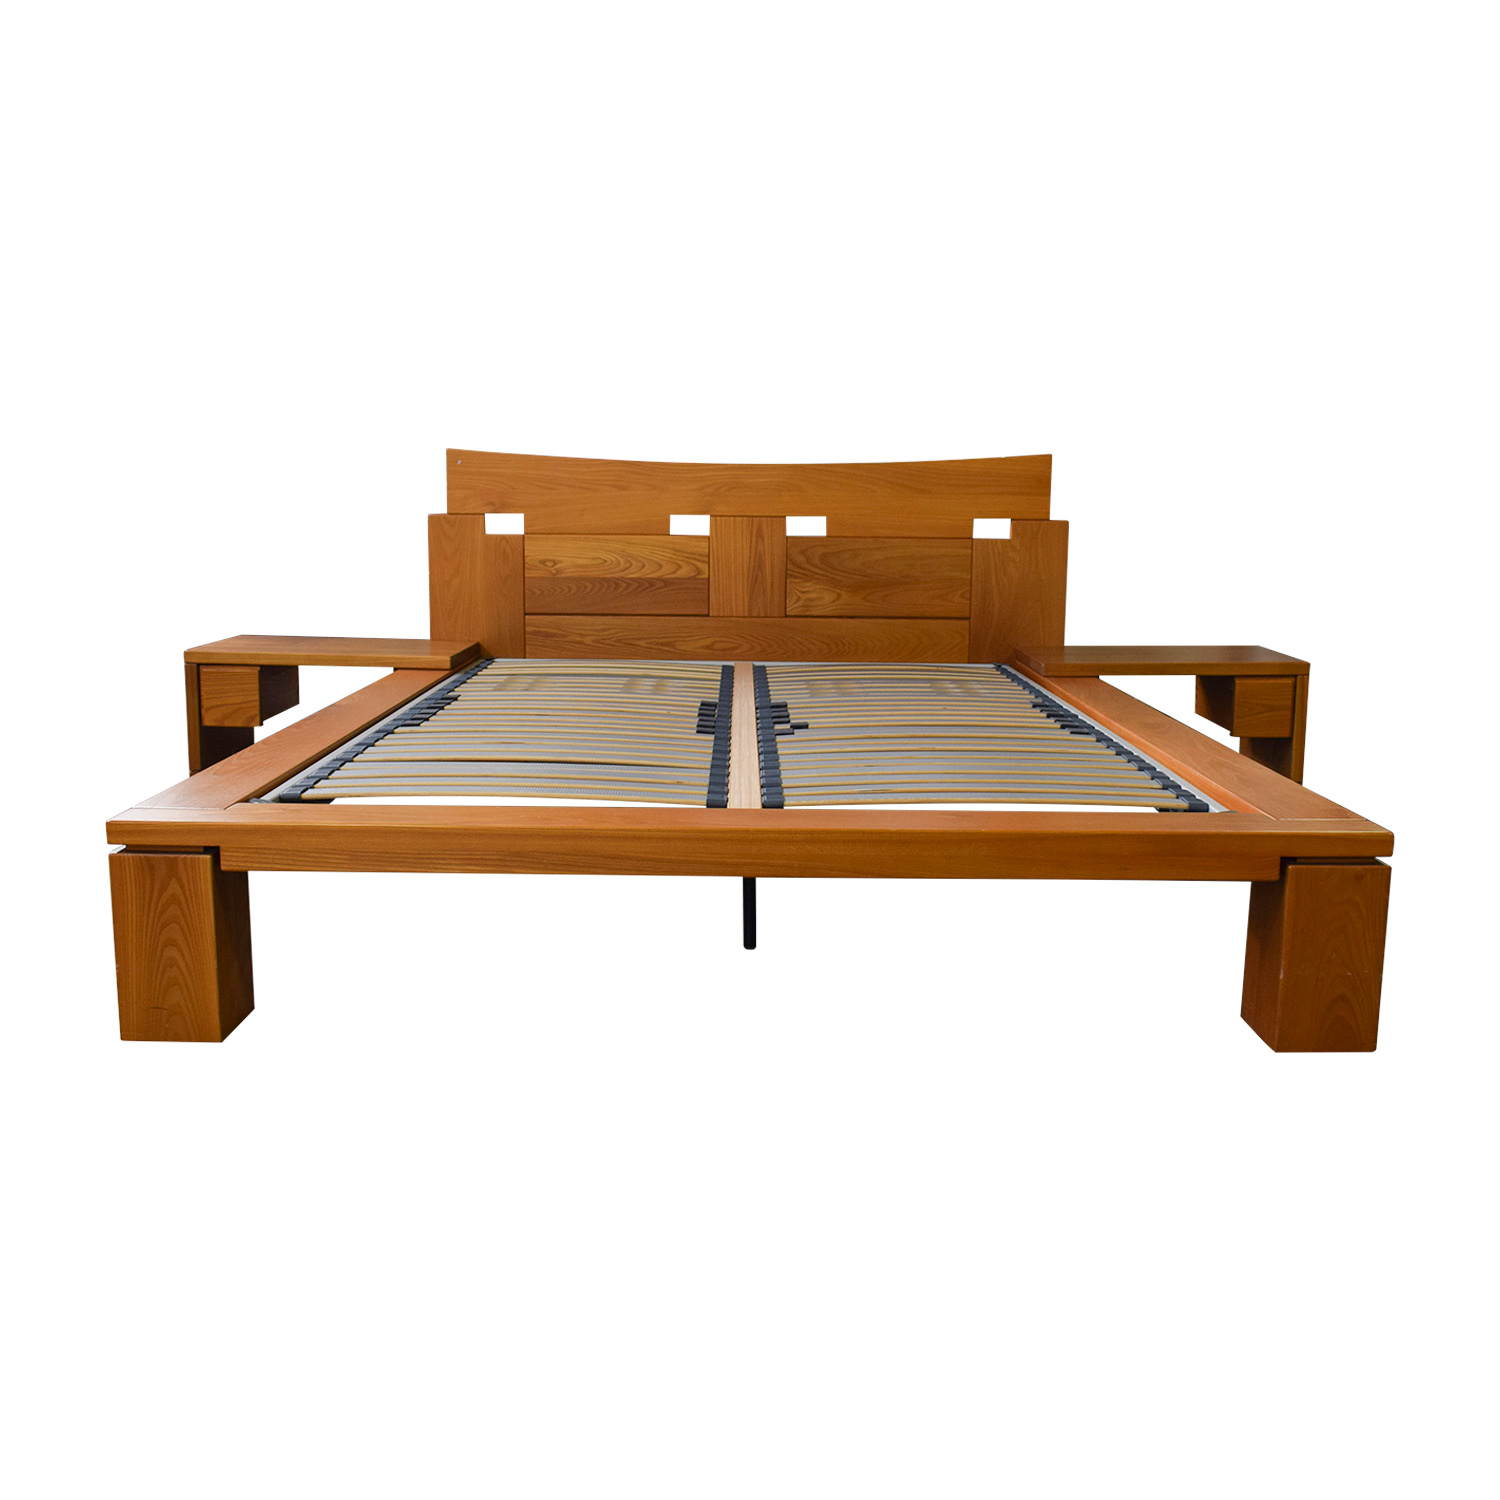 Roche Bobois Roche Bobois Wood Platform Full Bed Frame with End Tables Beds